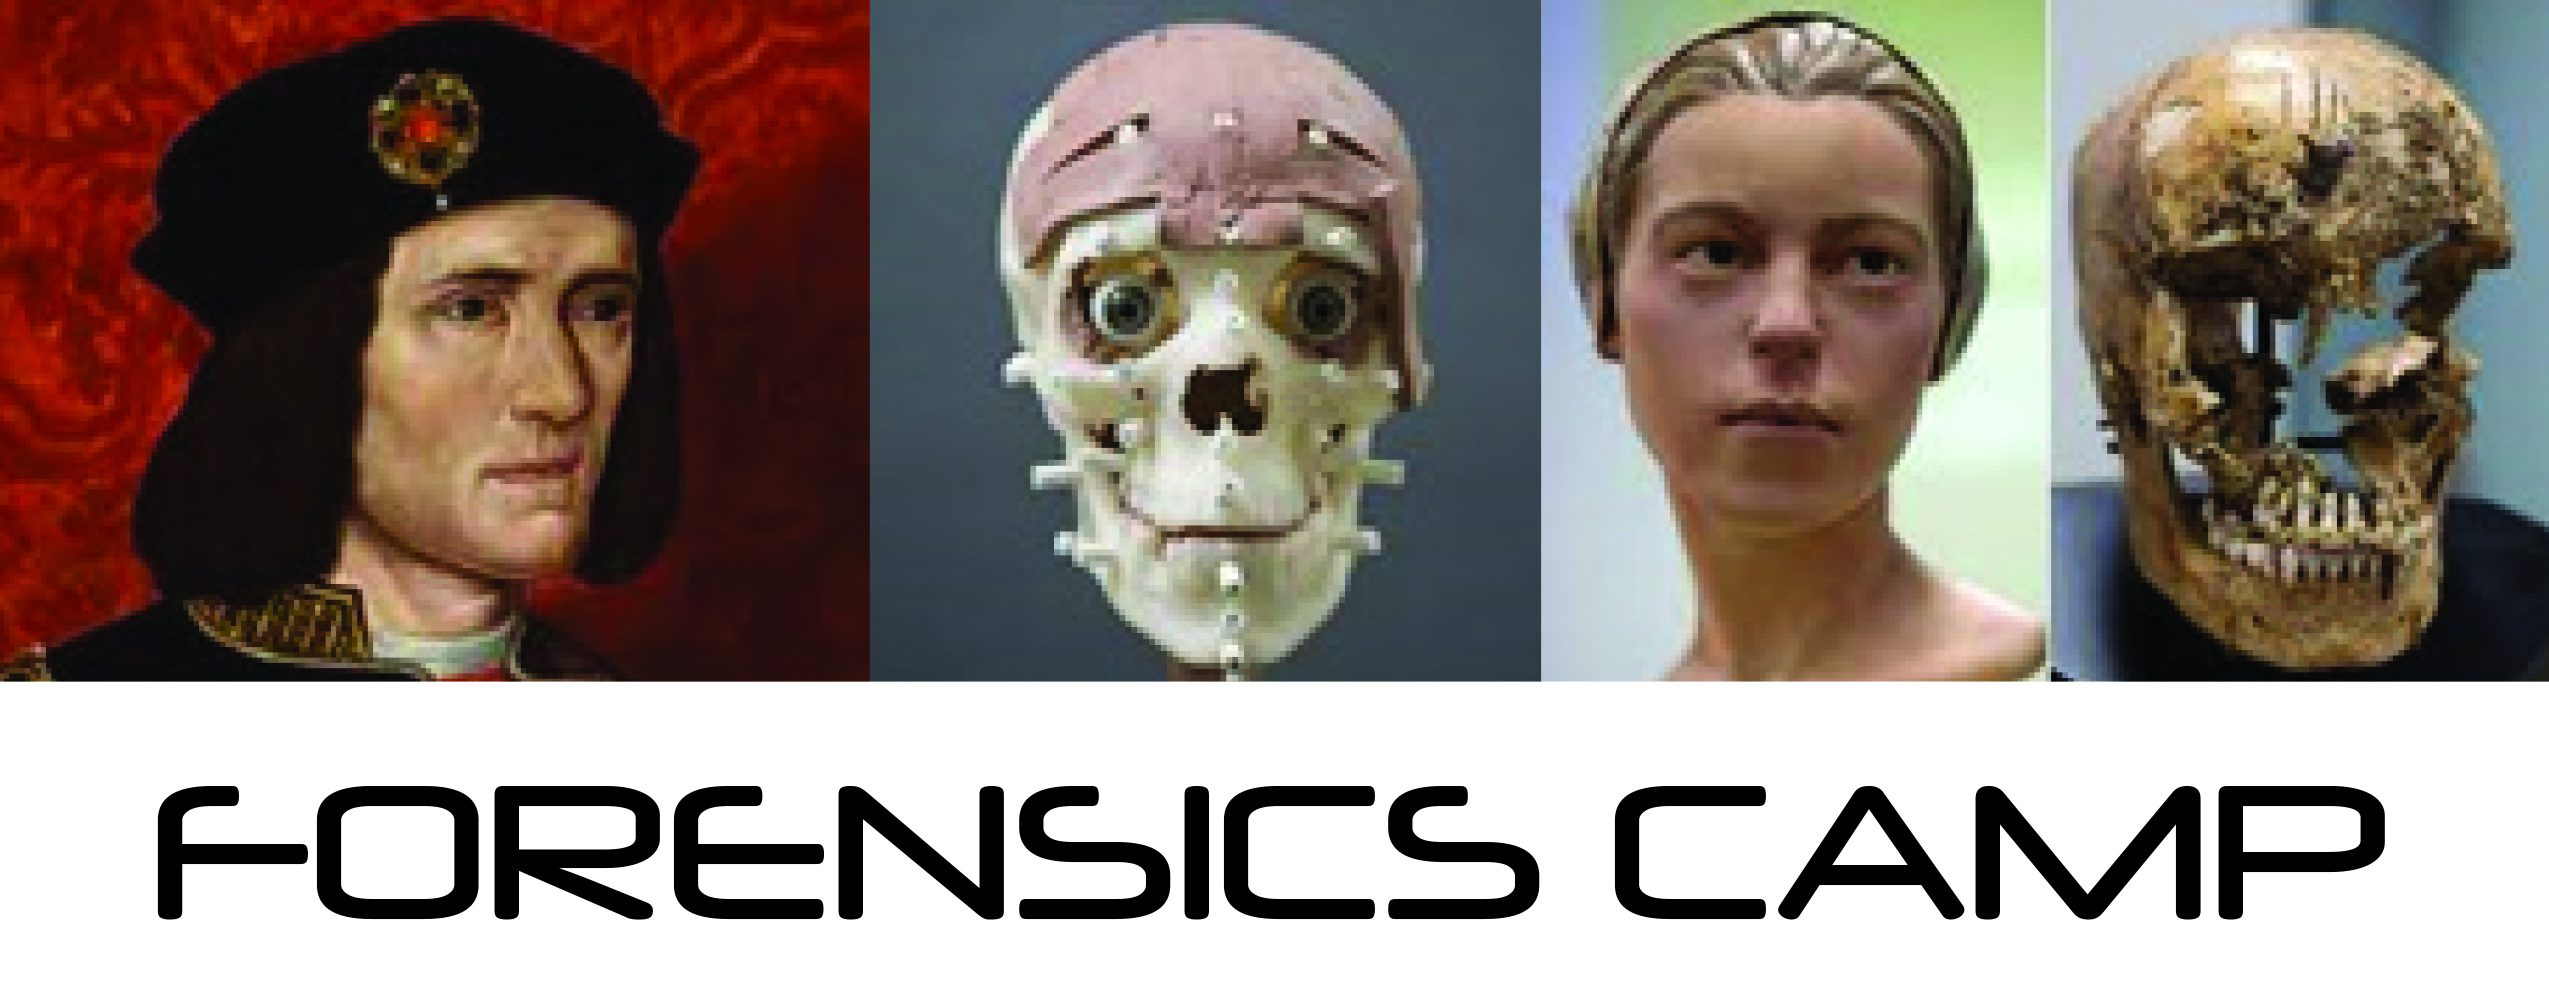 Forensics Camp Title Image